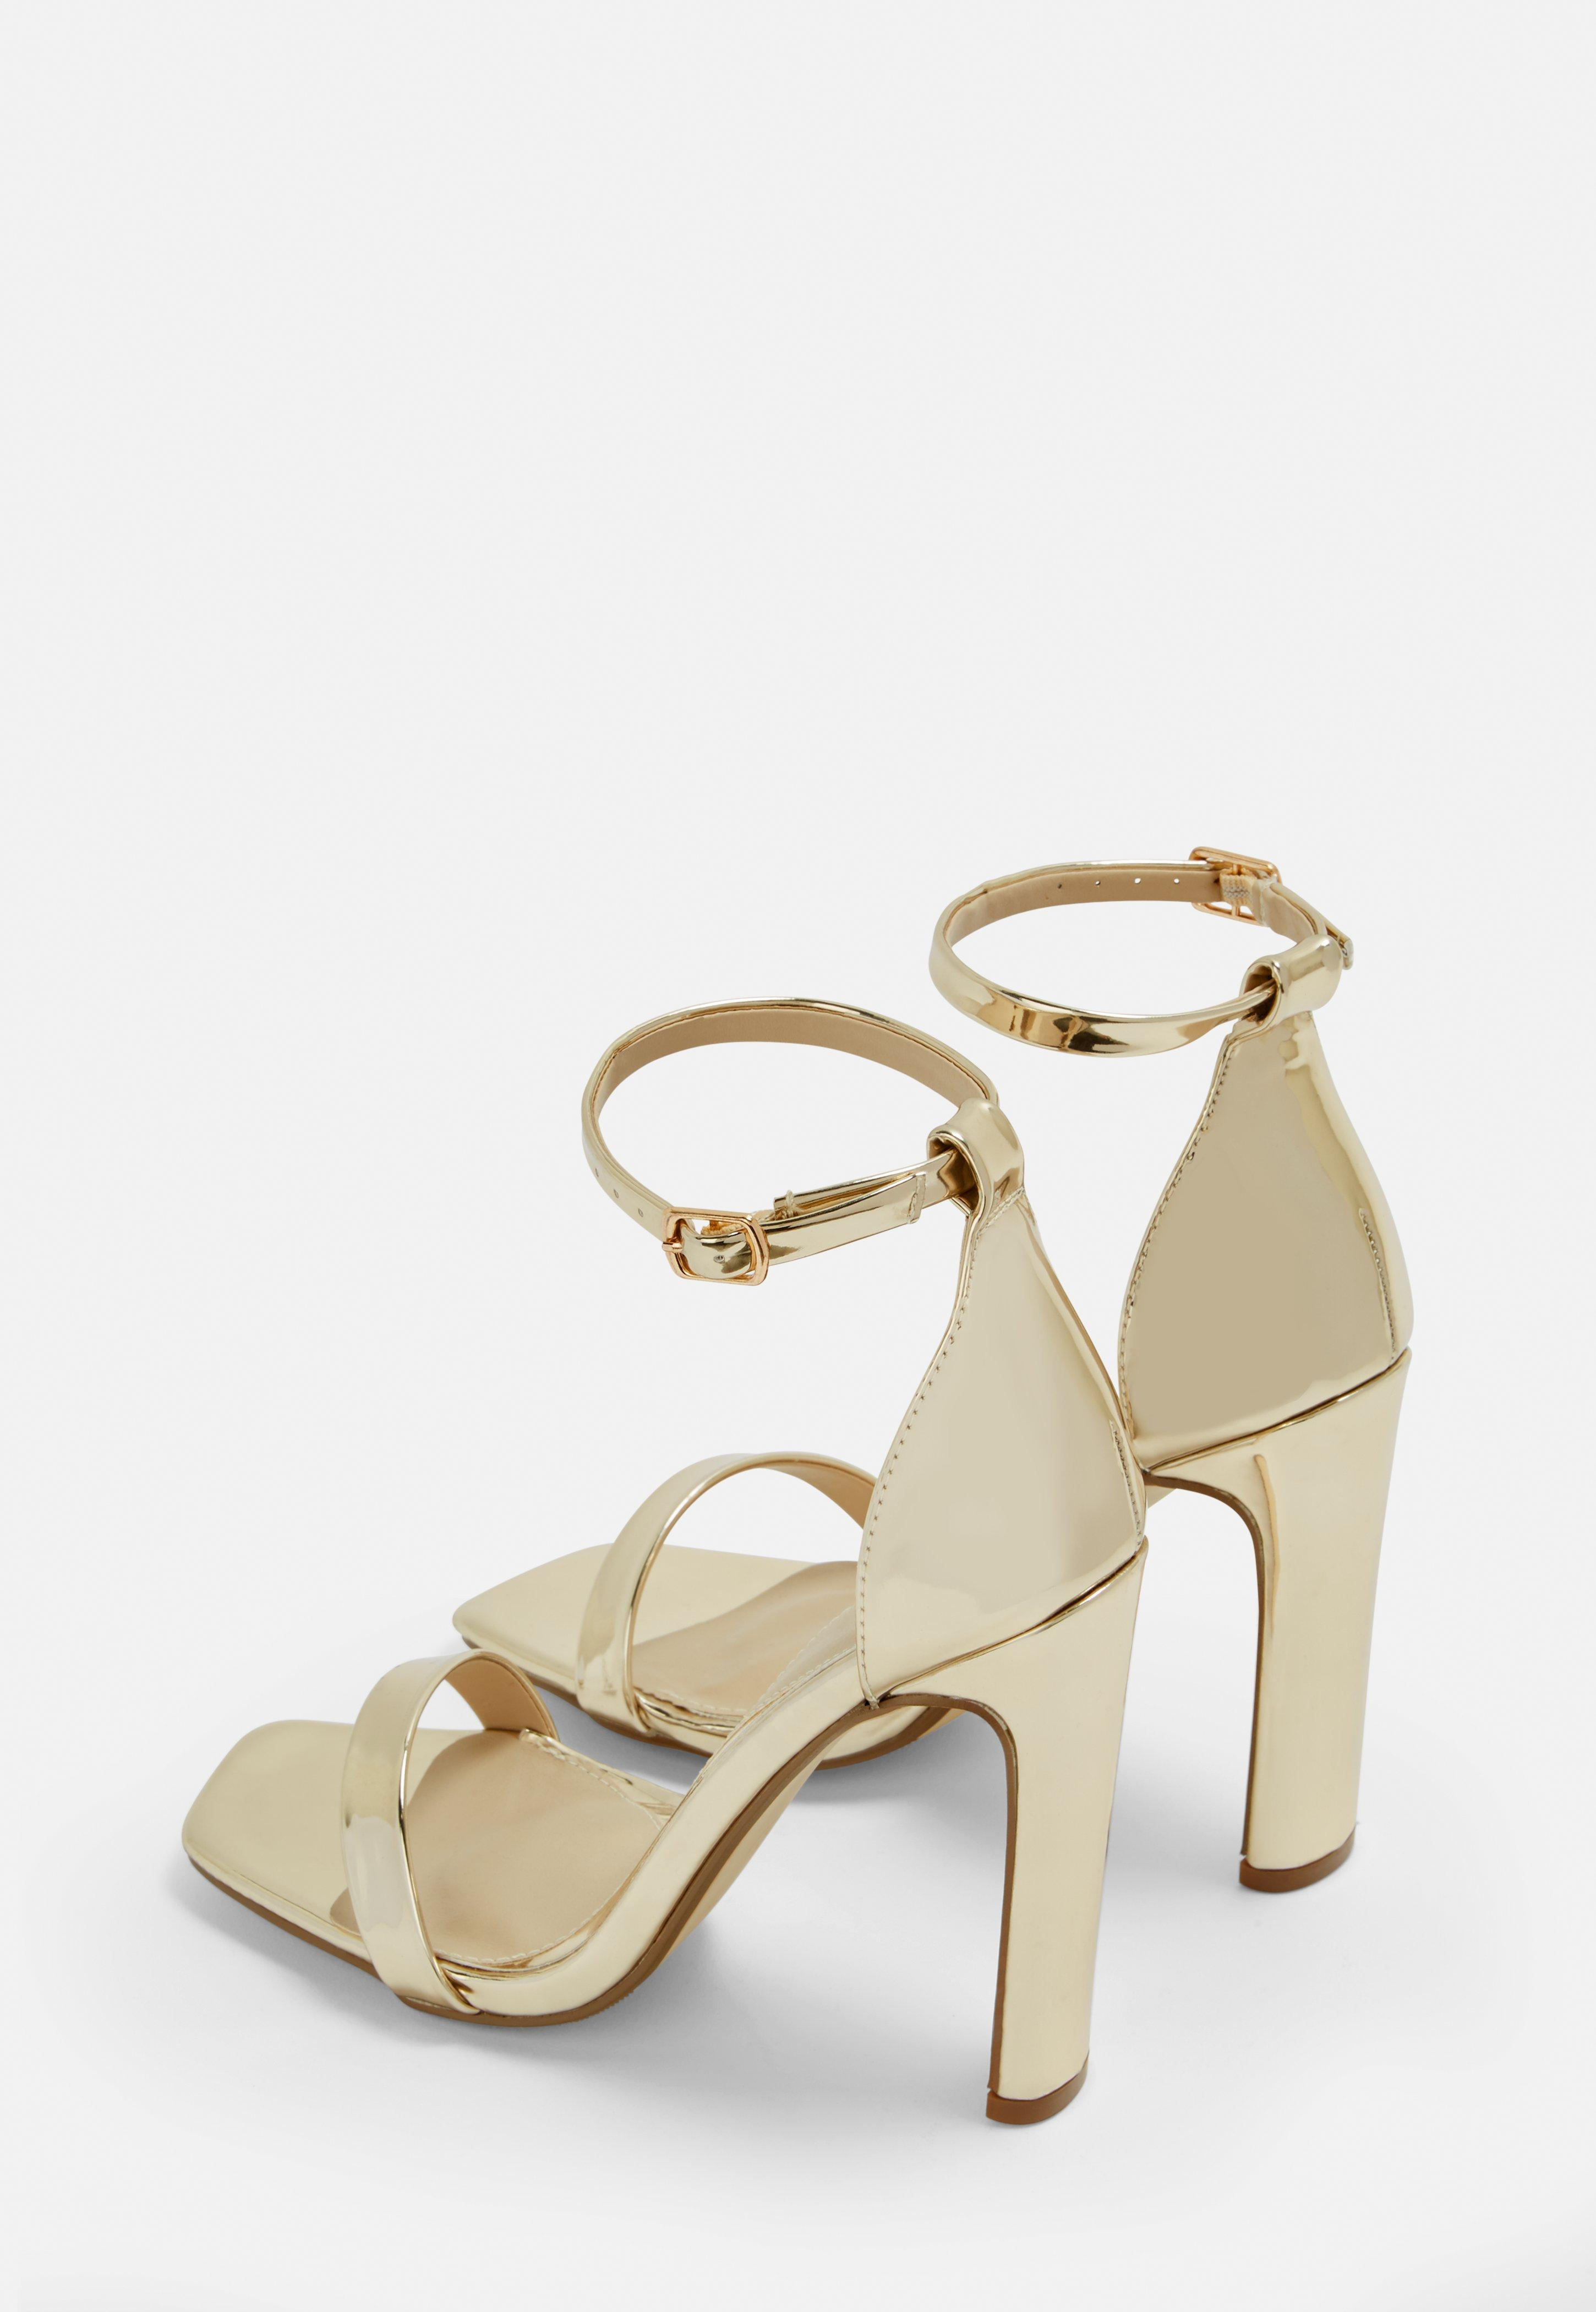 7cce2011e65 Missguided Gold Barely There Flared Block Heels in Metallic - Lyst